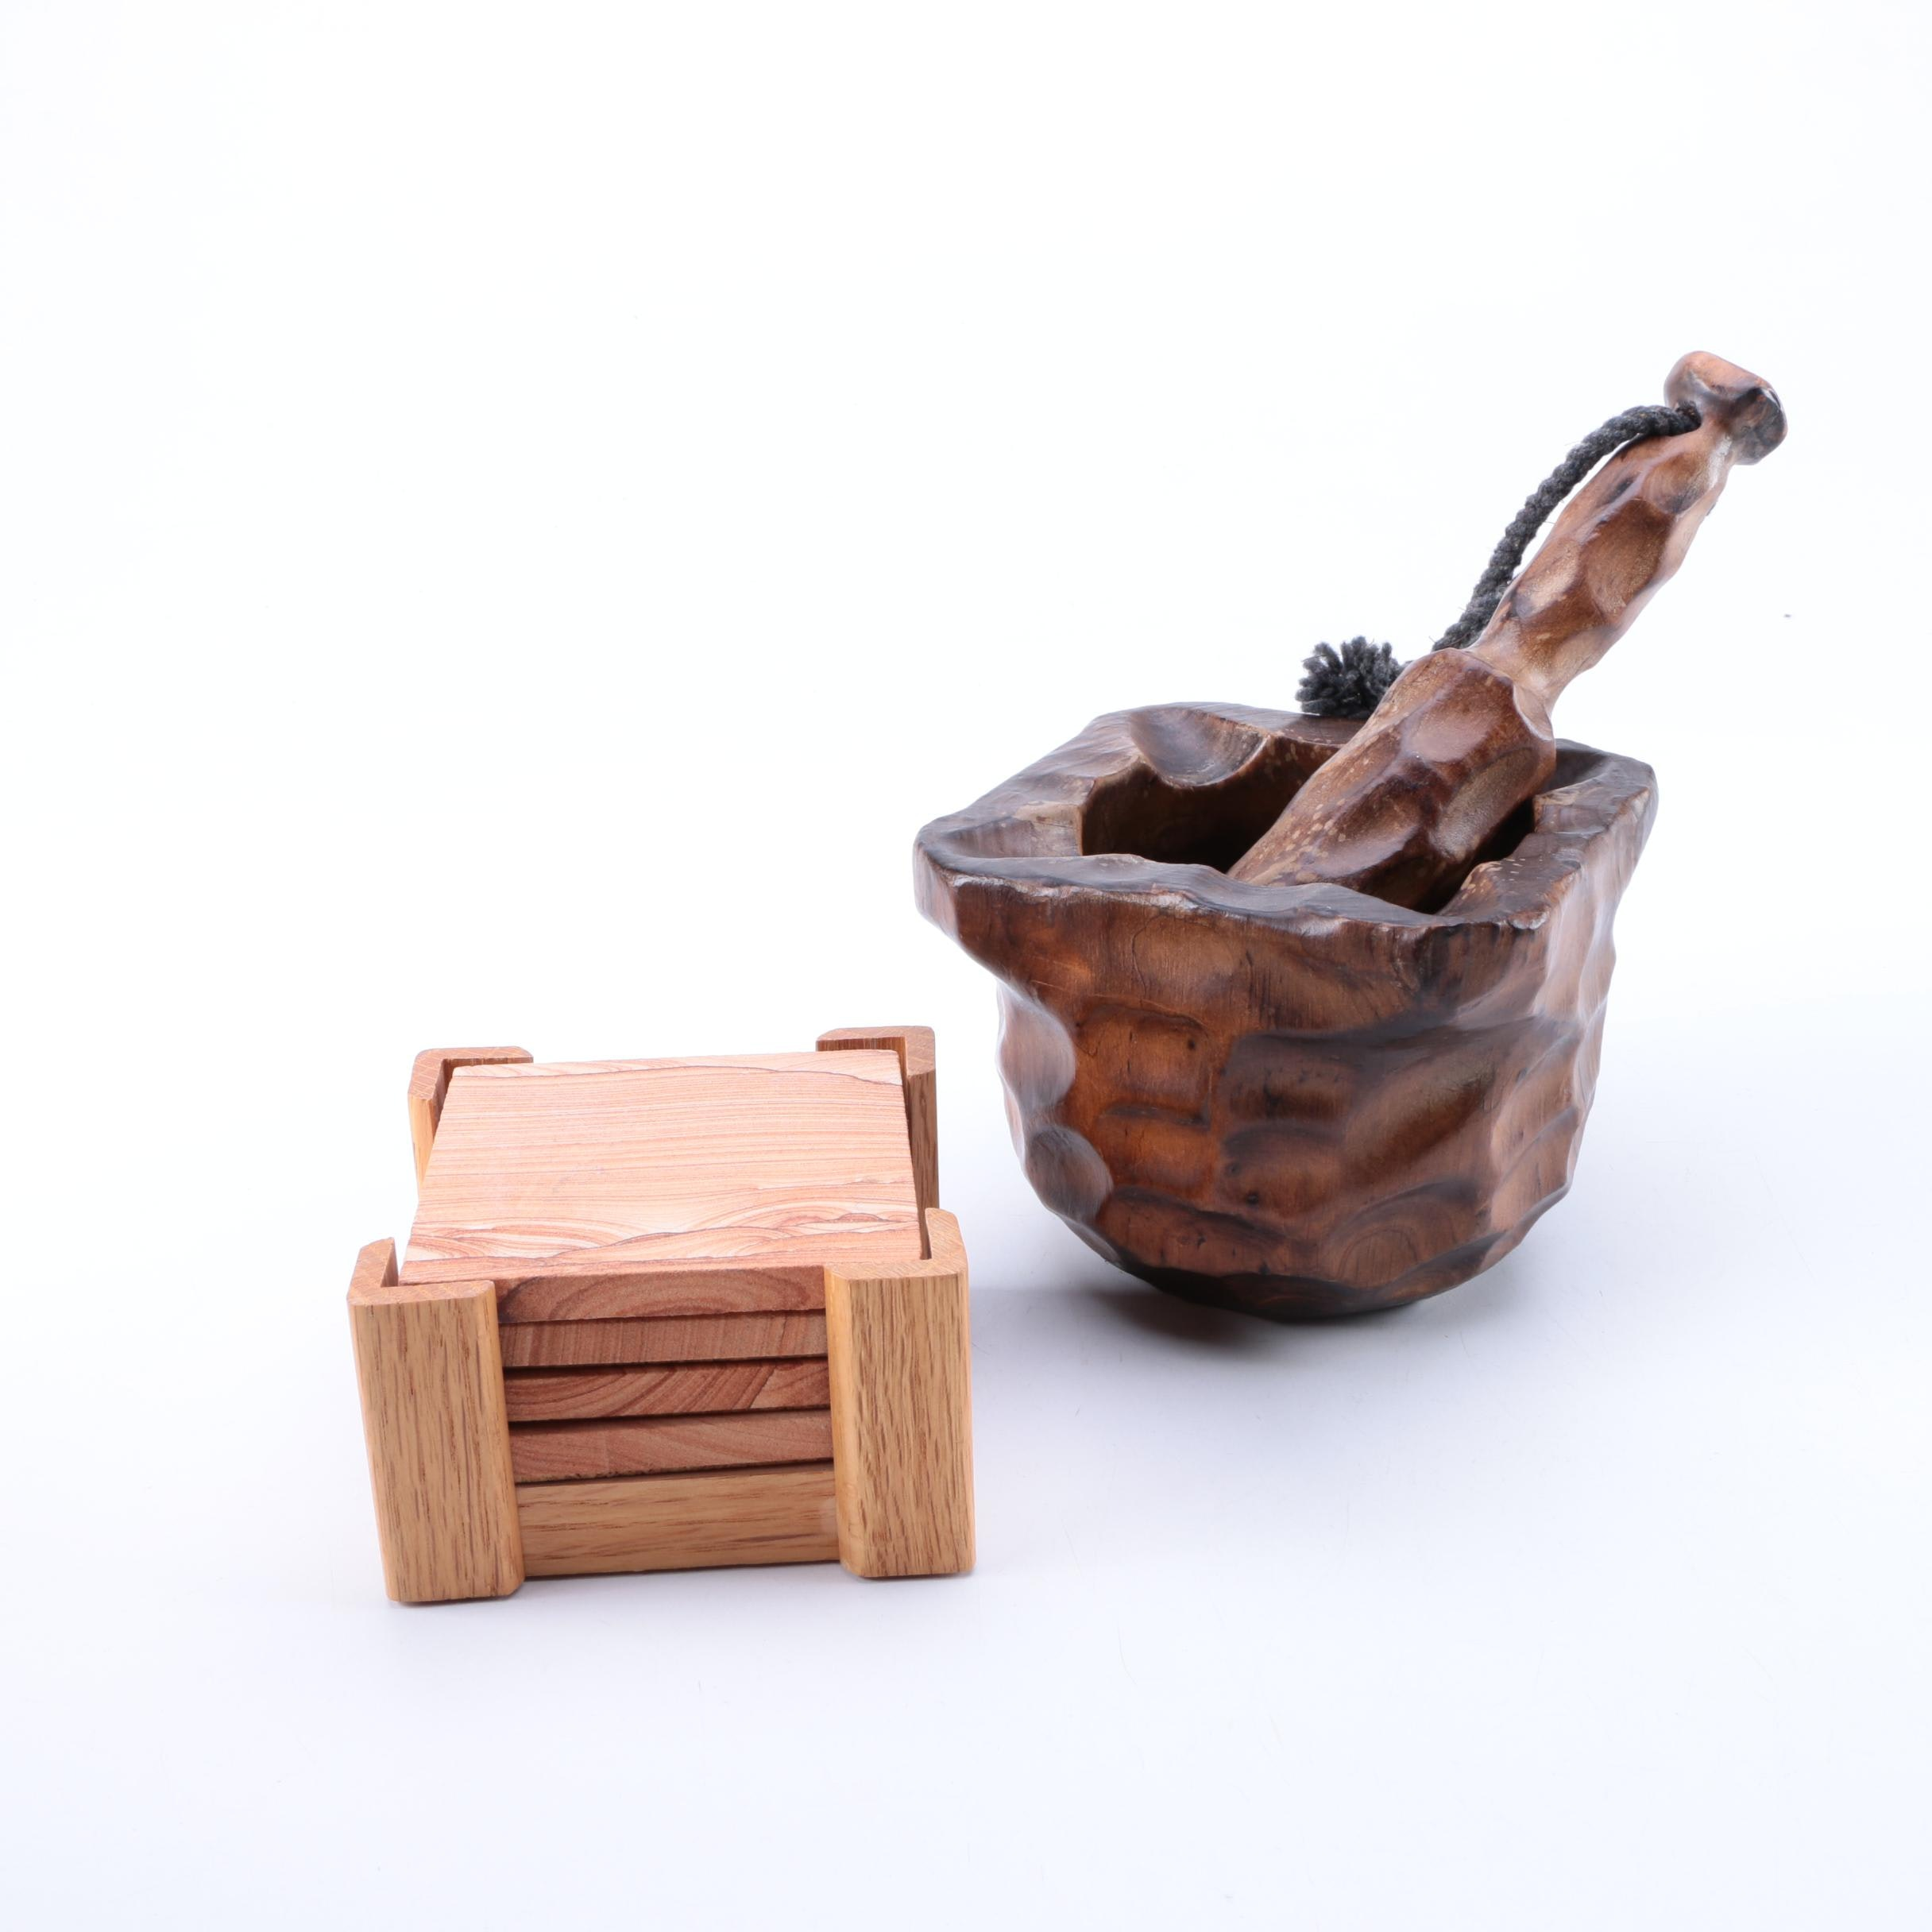 Wooden Mortar and Pestle and Sandstone Coasters